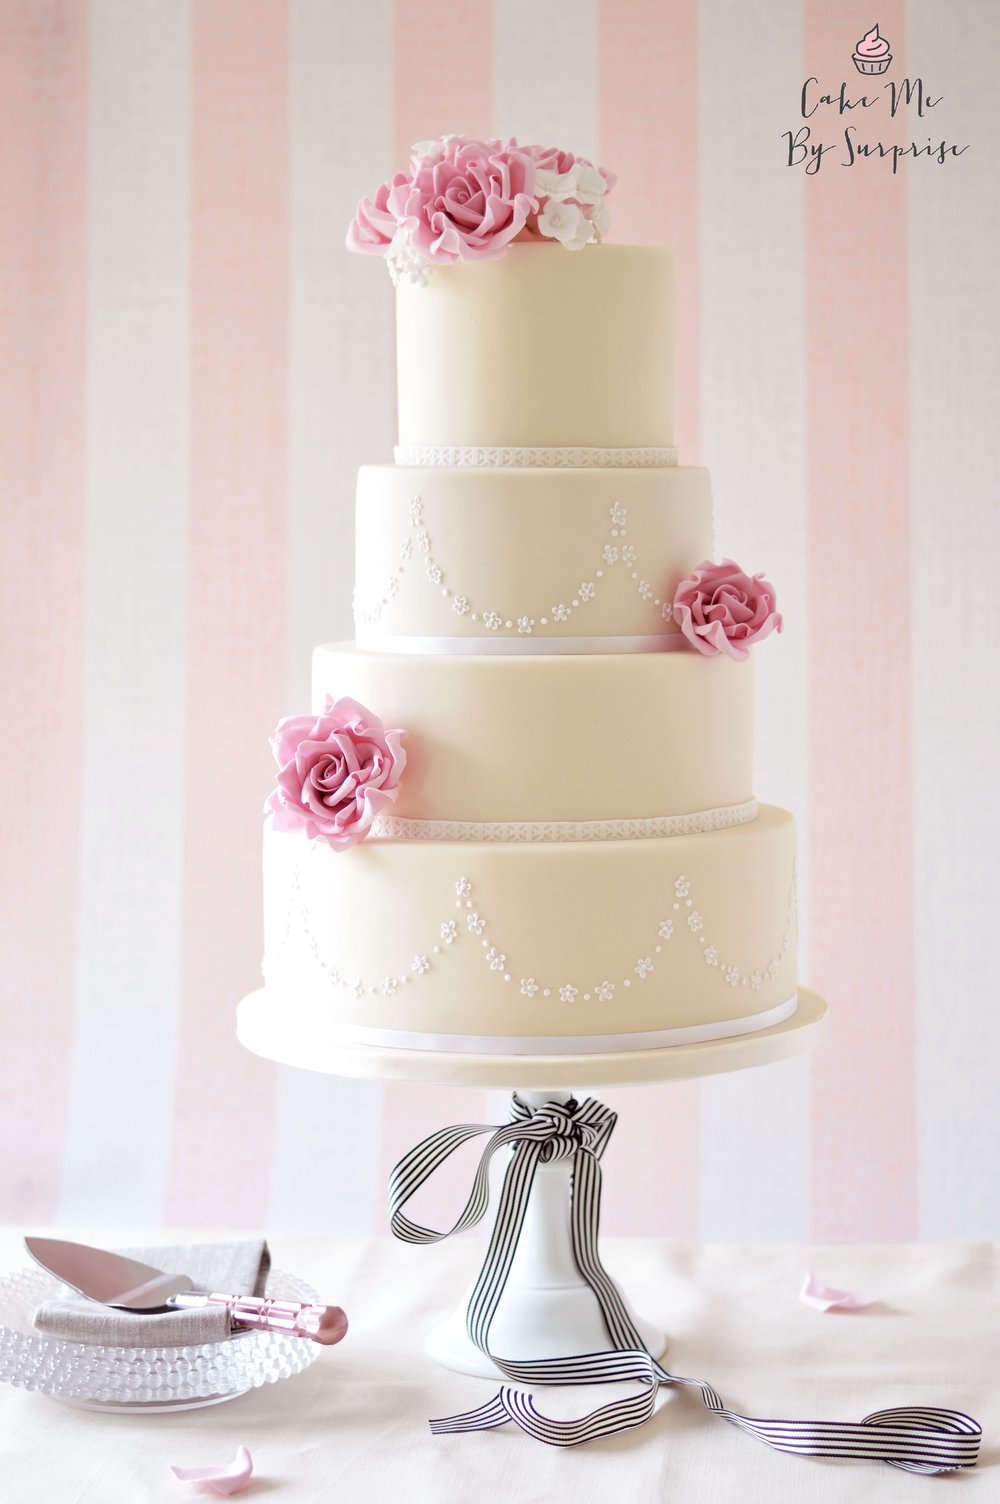 La Vie En Rose - Ivory and Pink Rose Wedding Cake A classic and elegant ivory wedding cake, finished with piped daisy tiers and handcrafted tea roses in dusty pink. Serves 180+ £640